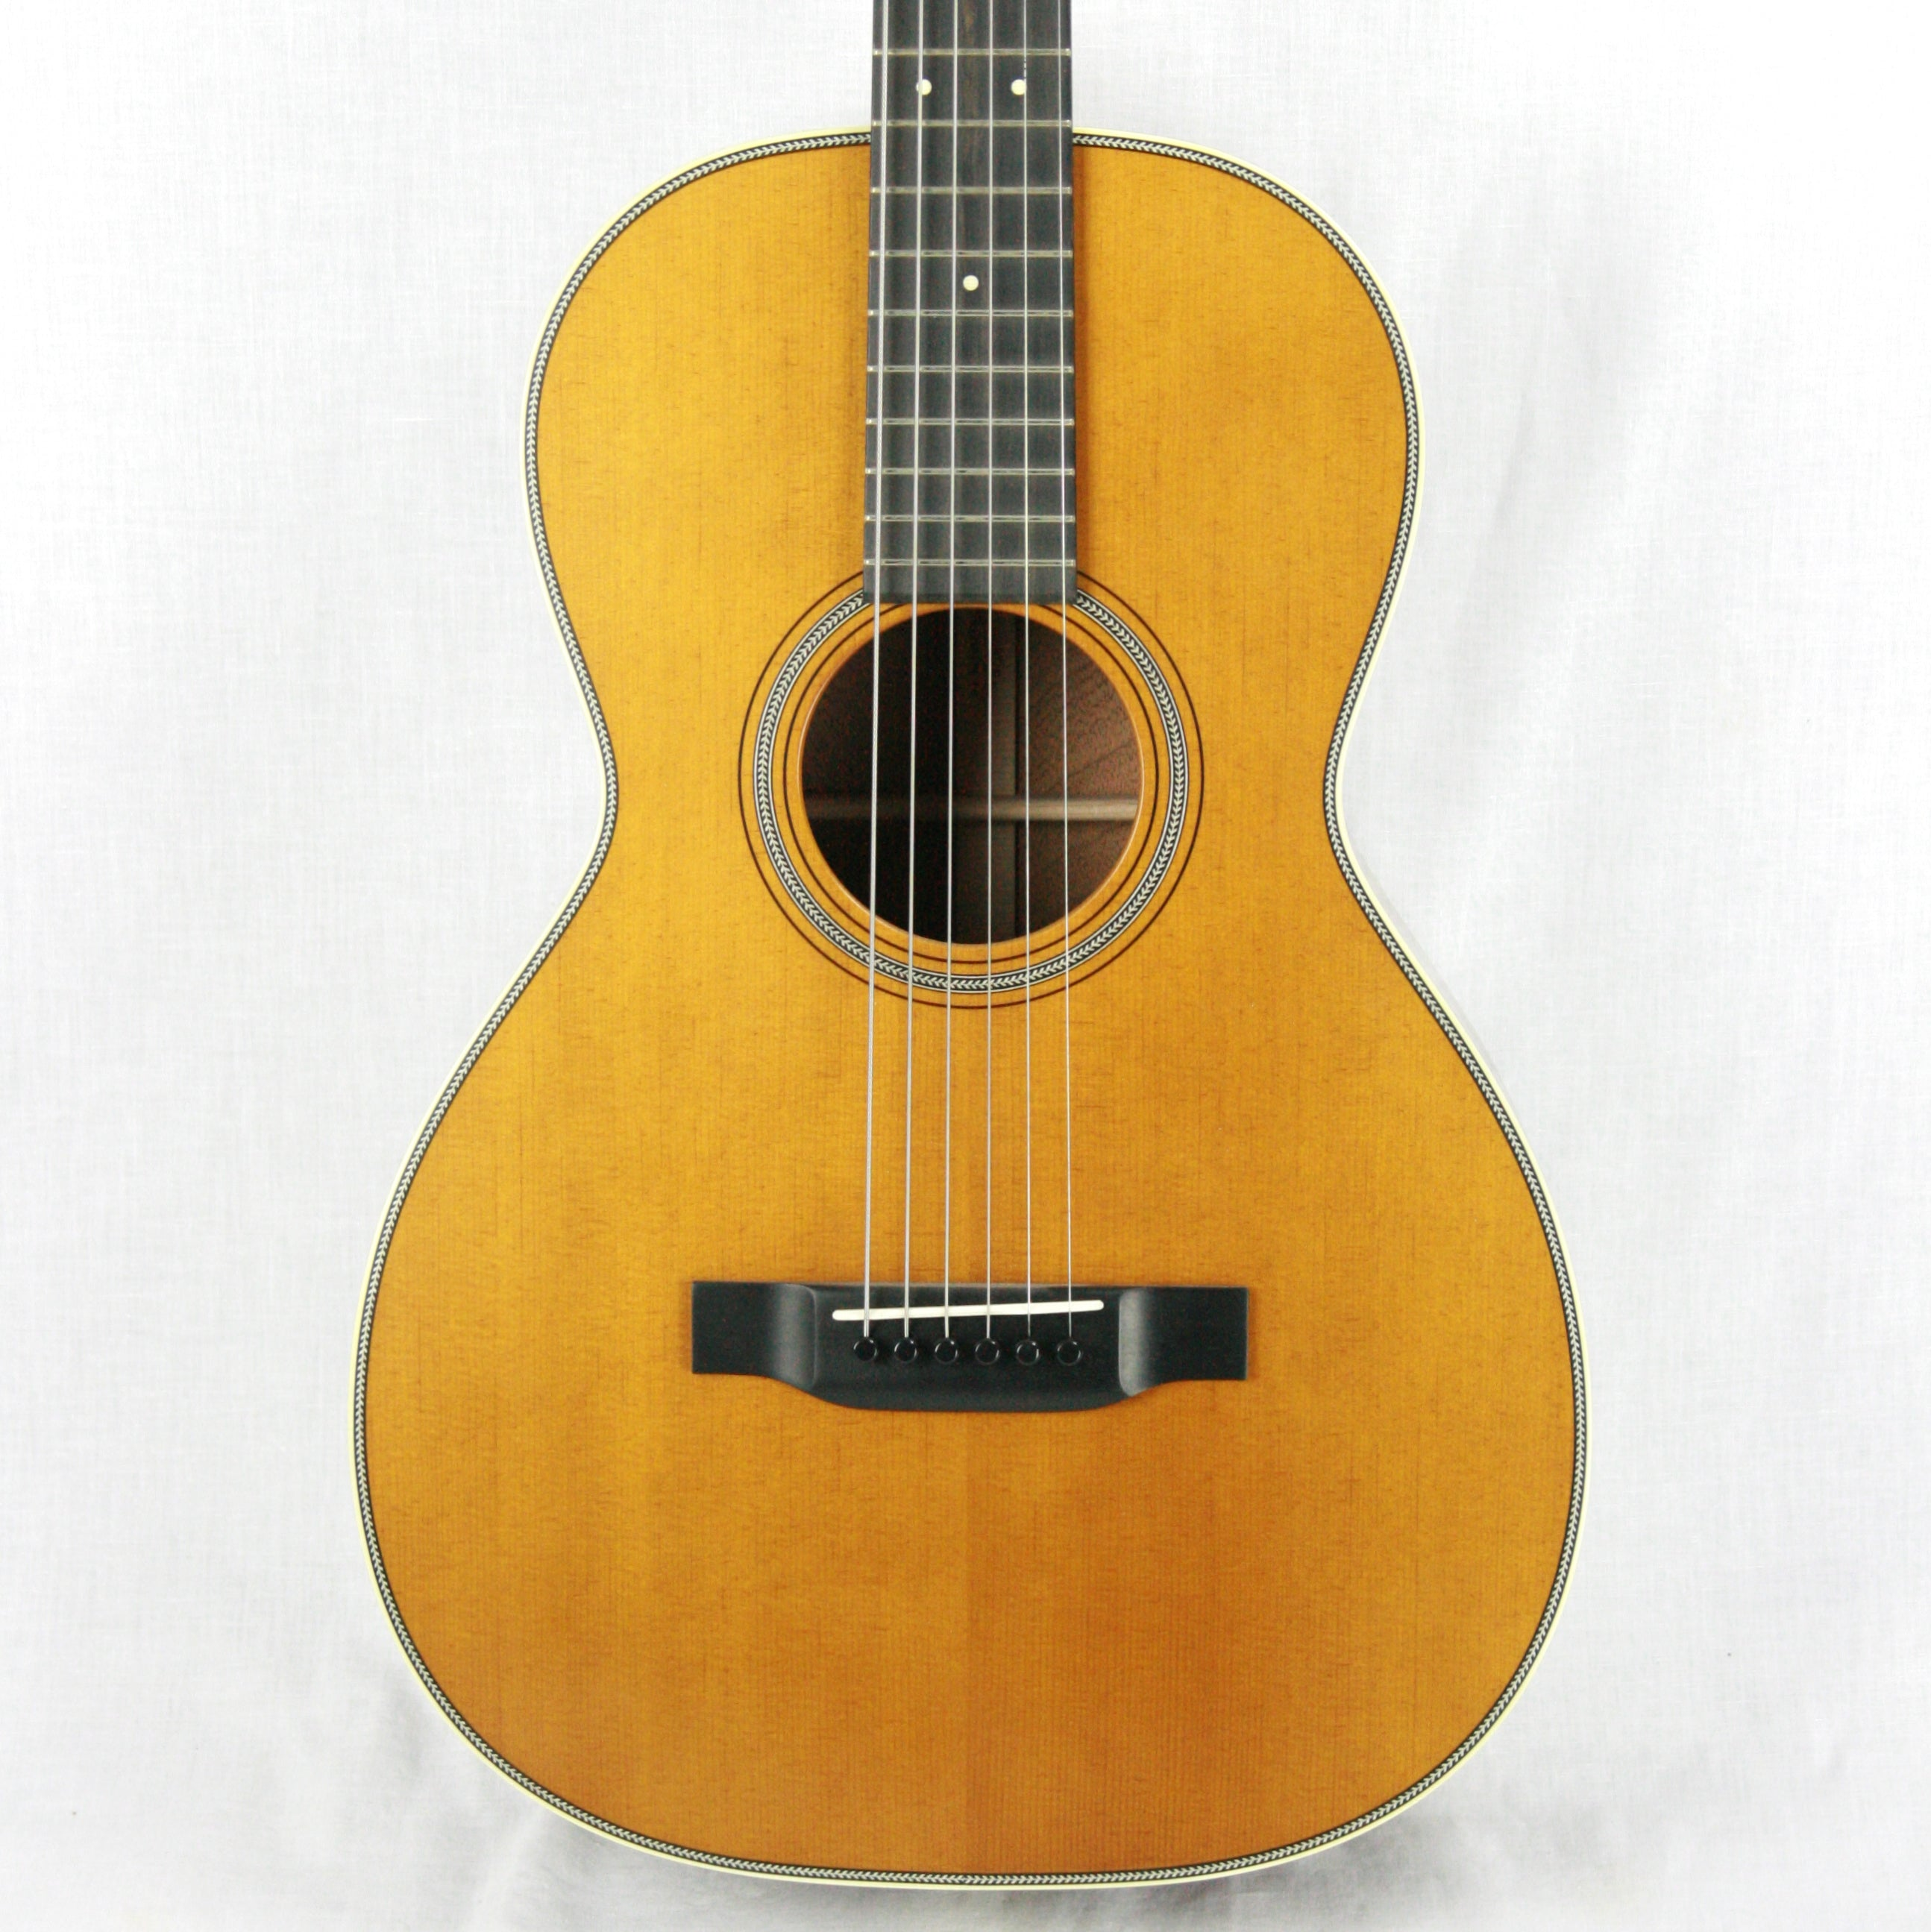 Martin Custom Shop 0-18 12-Fret Sipo! Scalloped Bracing! Sitka Top, Ditson Finish, Herringbone!